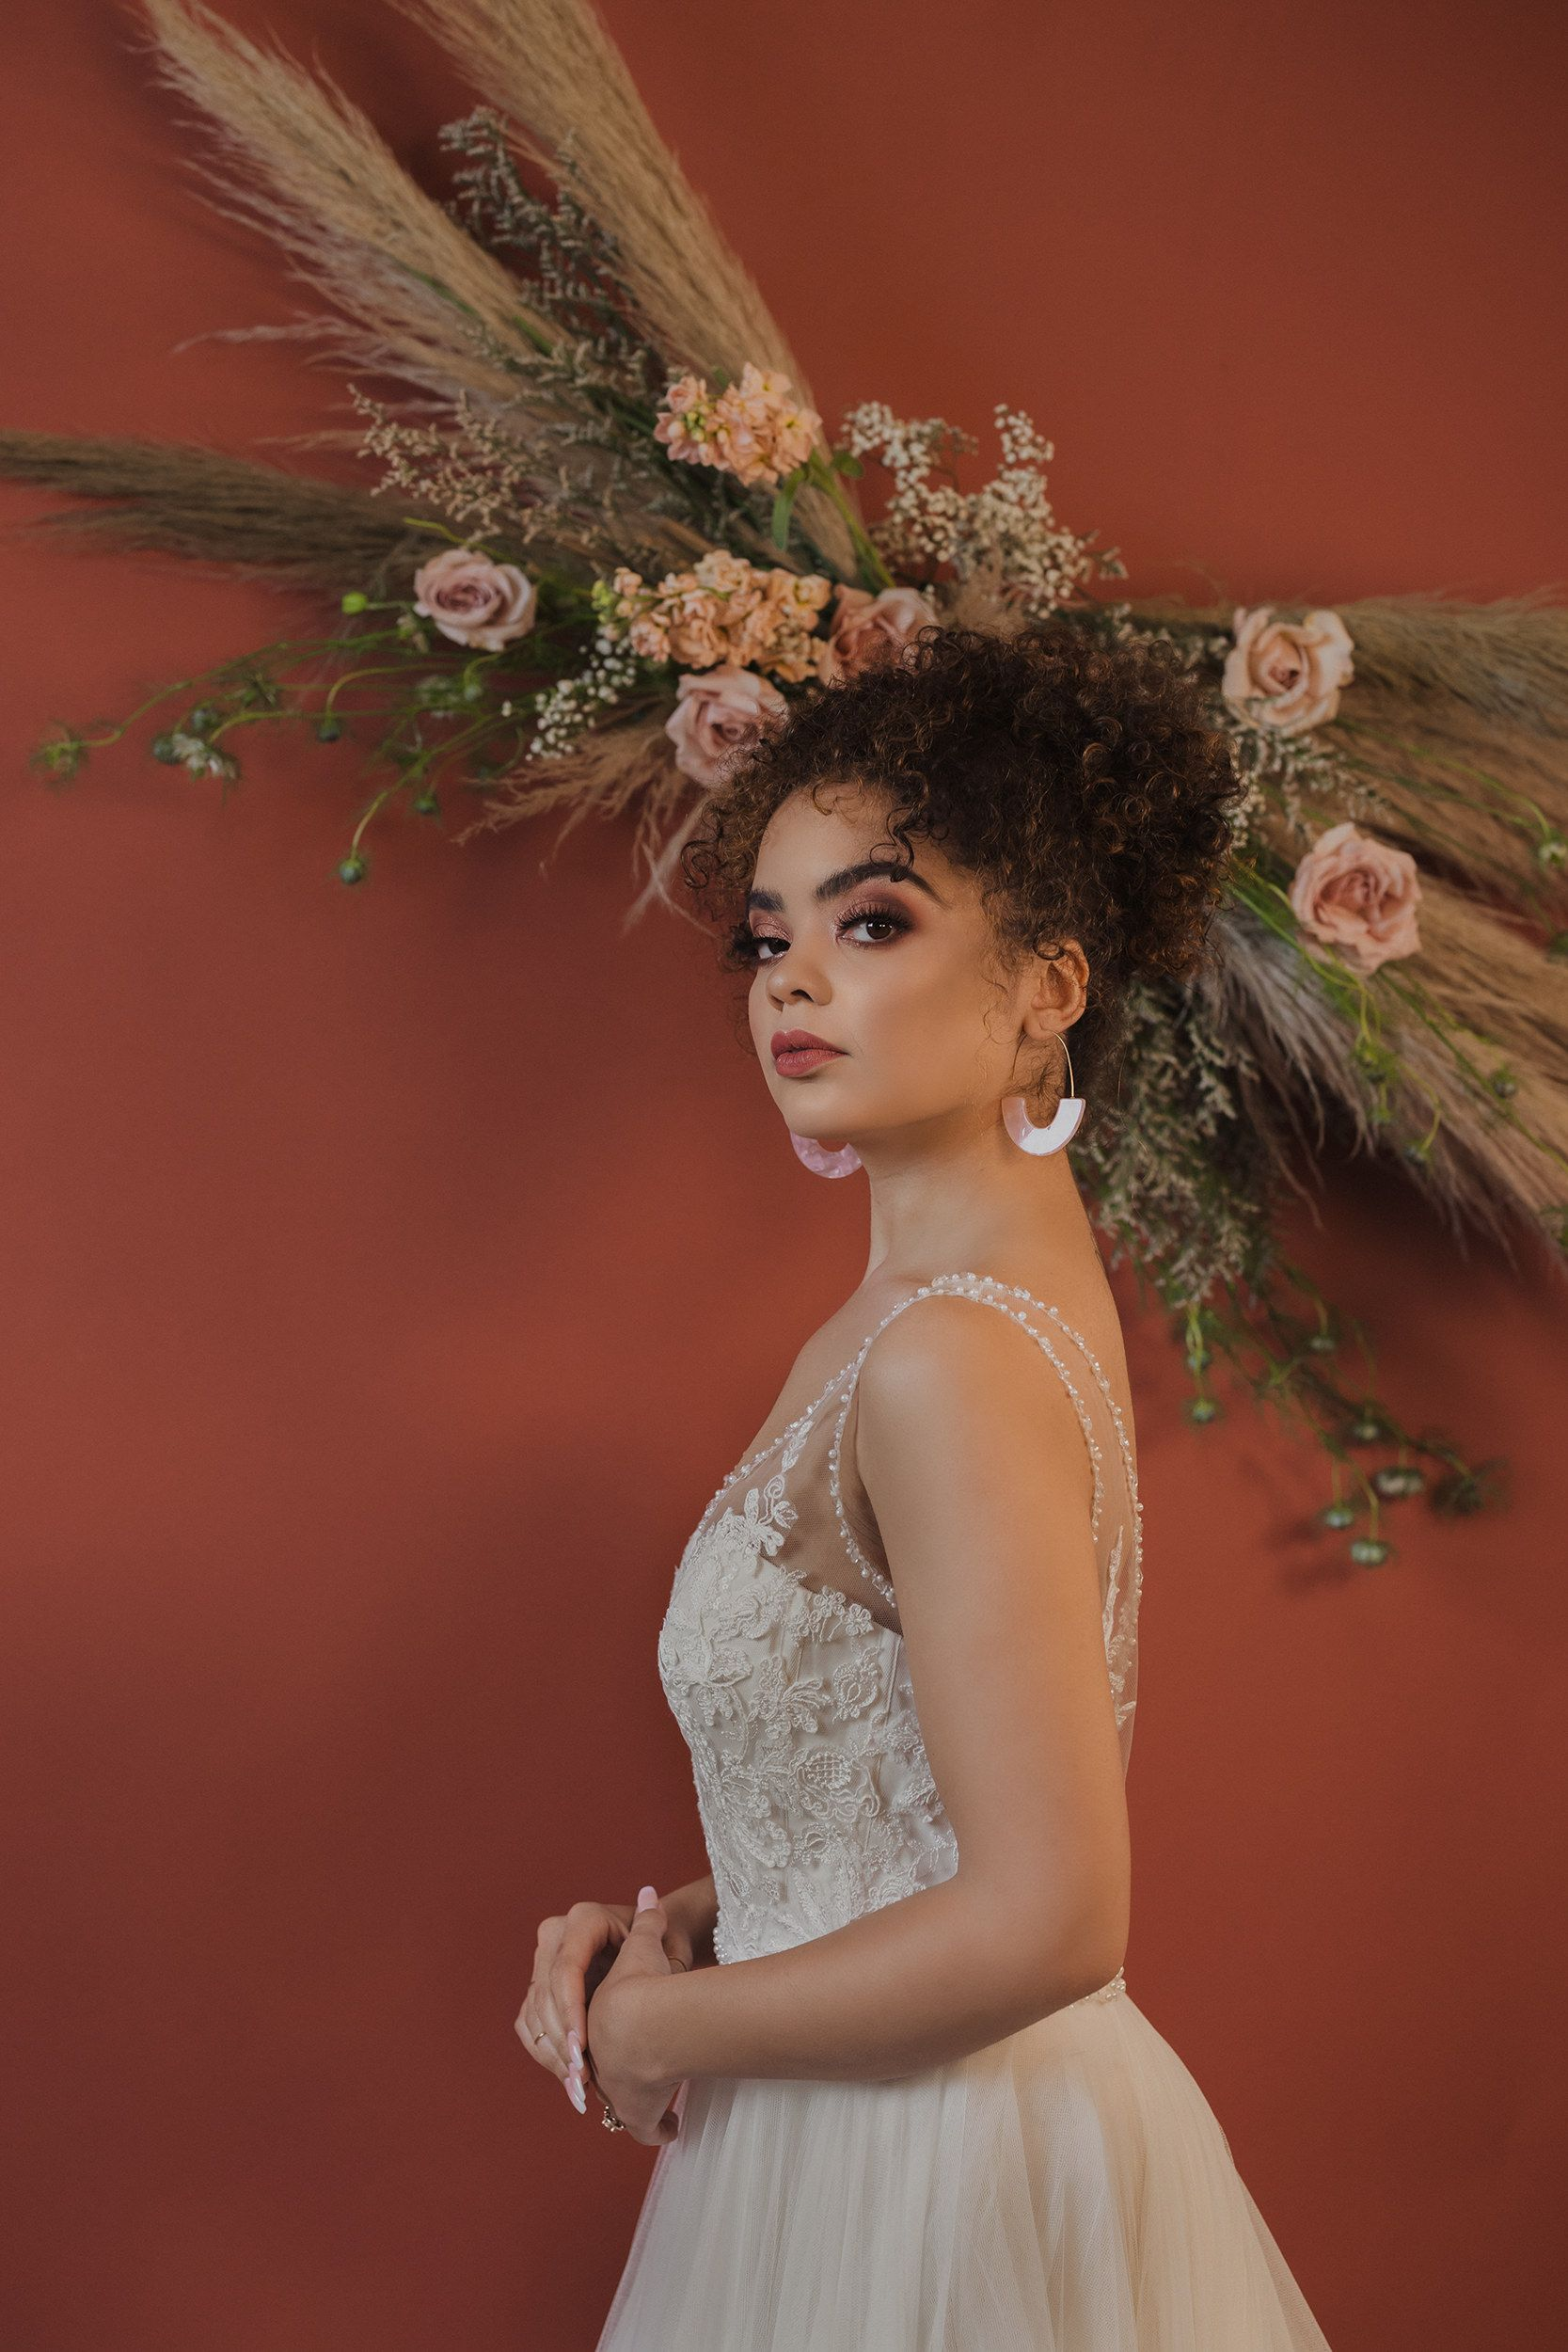 Bridal hair and makeup by Cat Owens. Shot in Tulsa